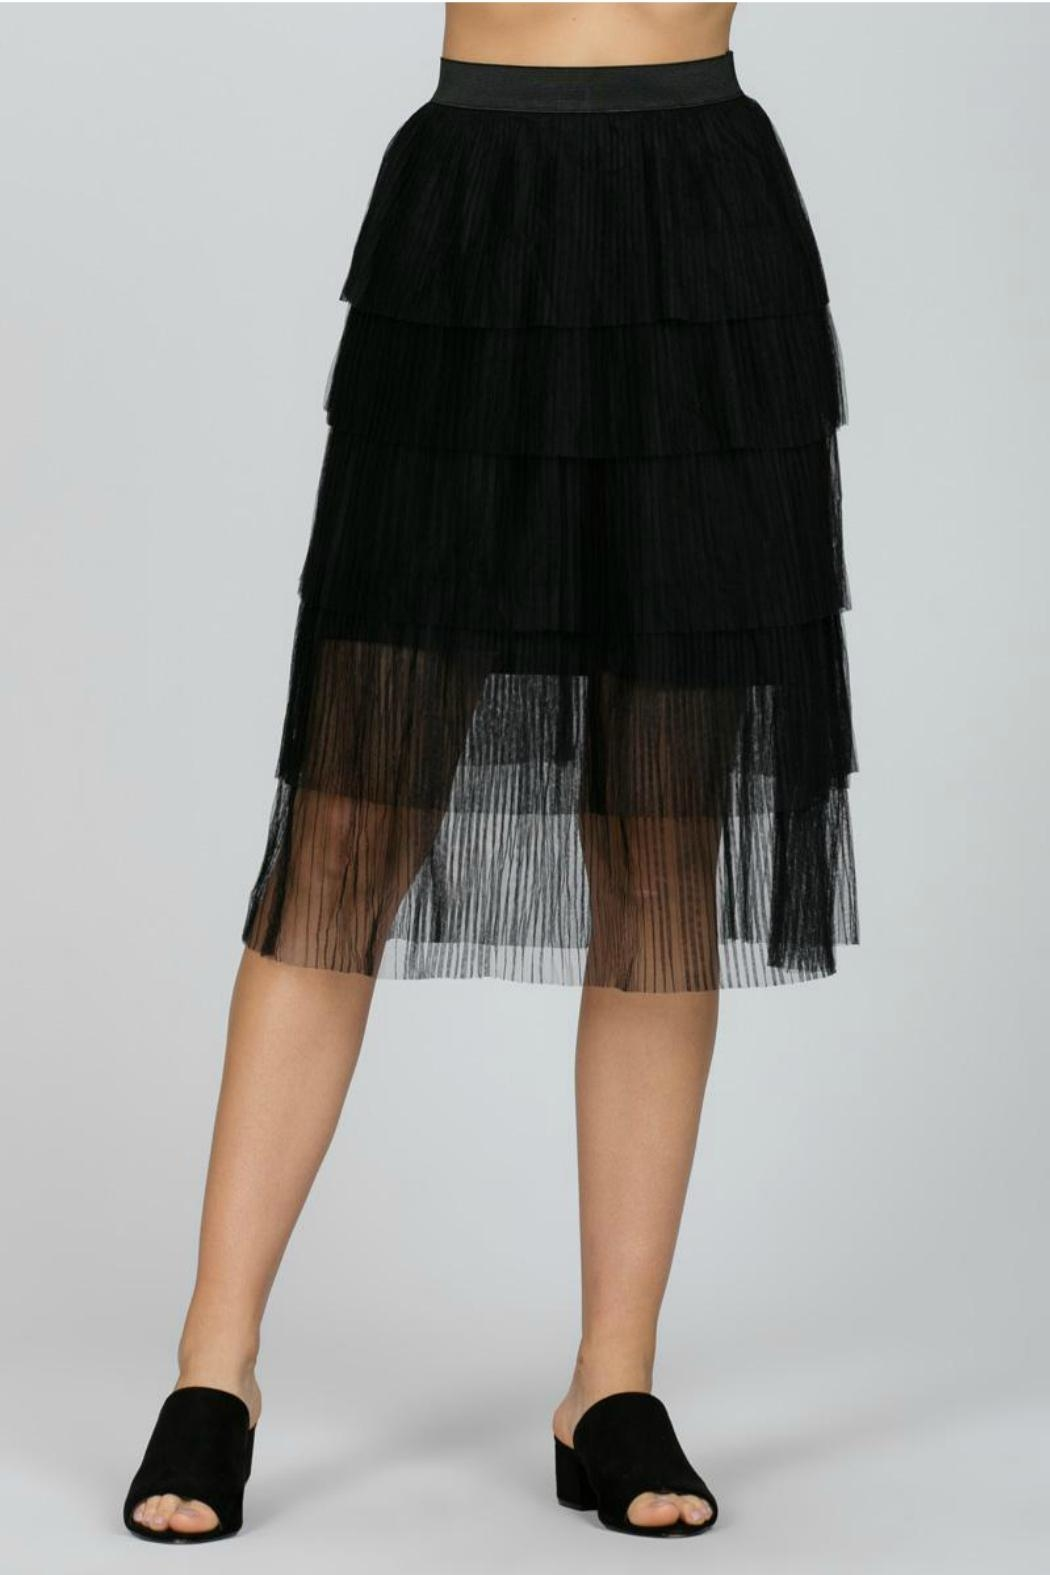 Ark & Co. Mesh Pleated Skirt - Side Cropped Image